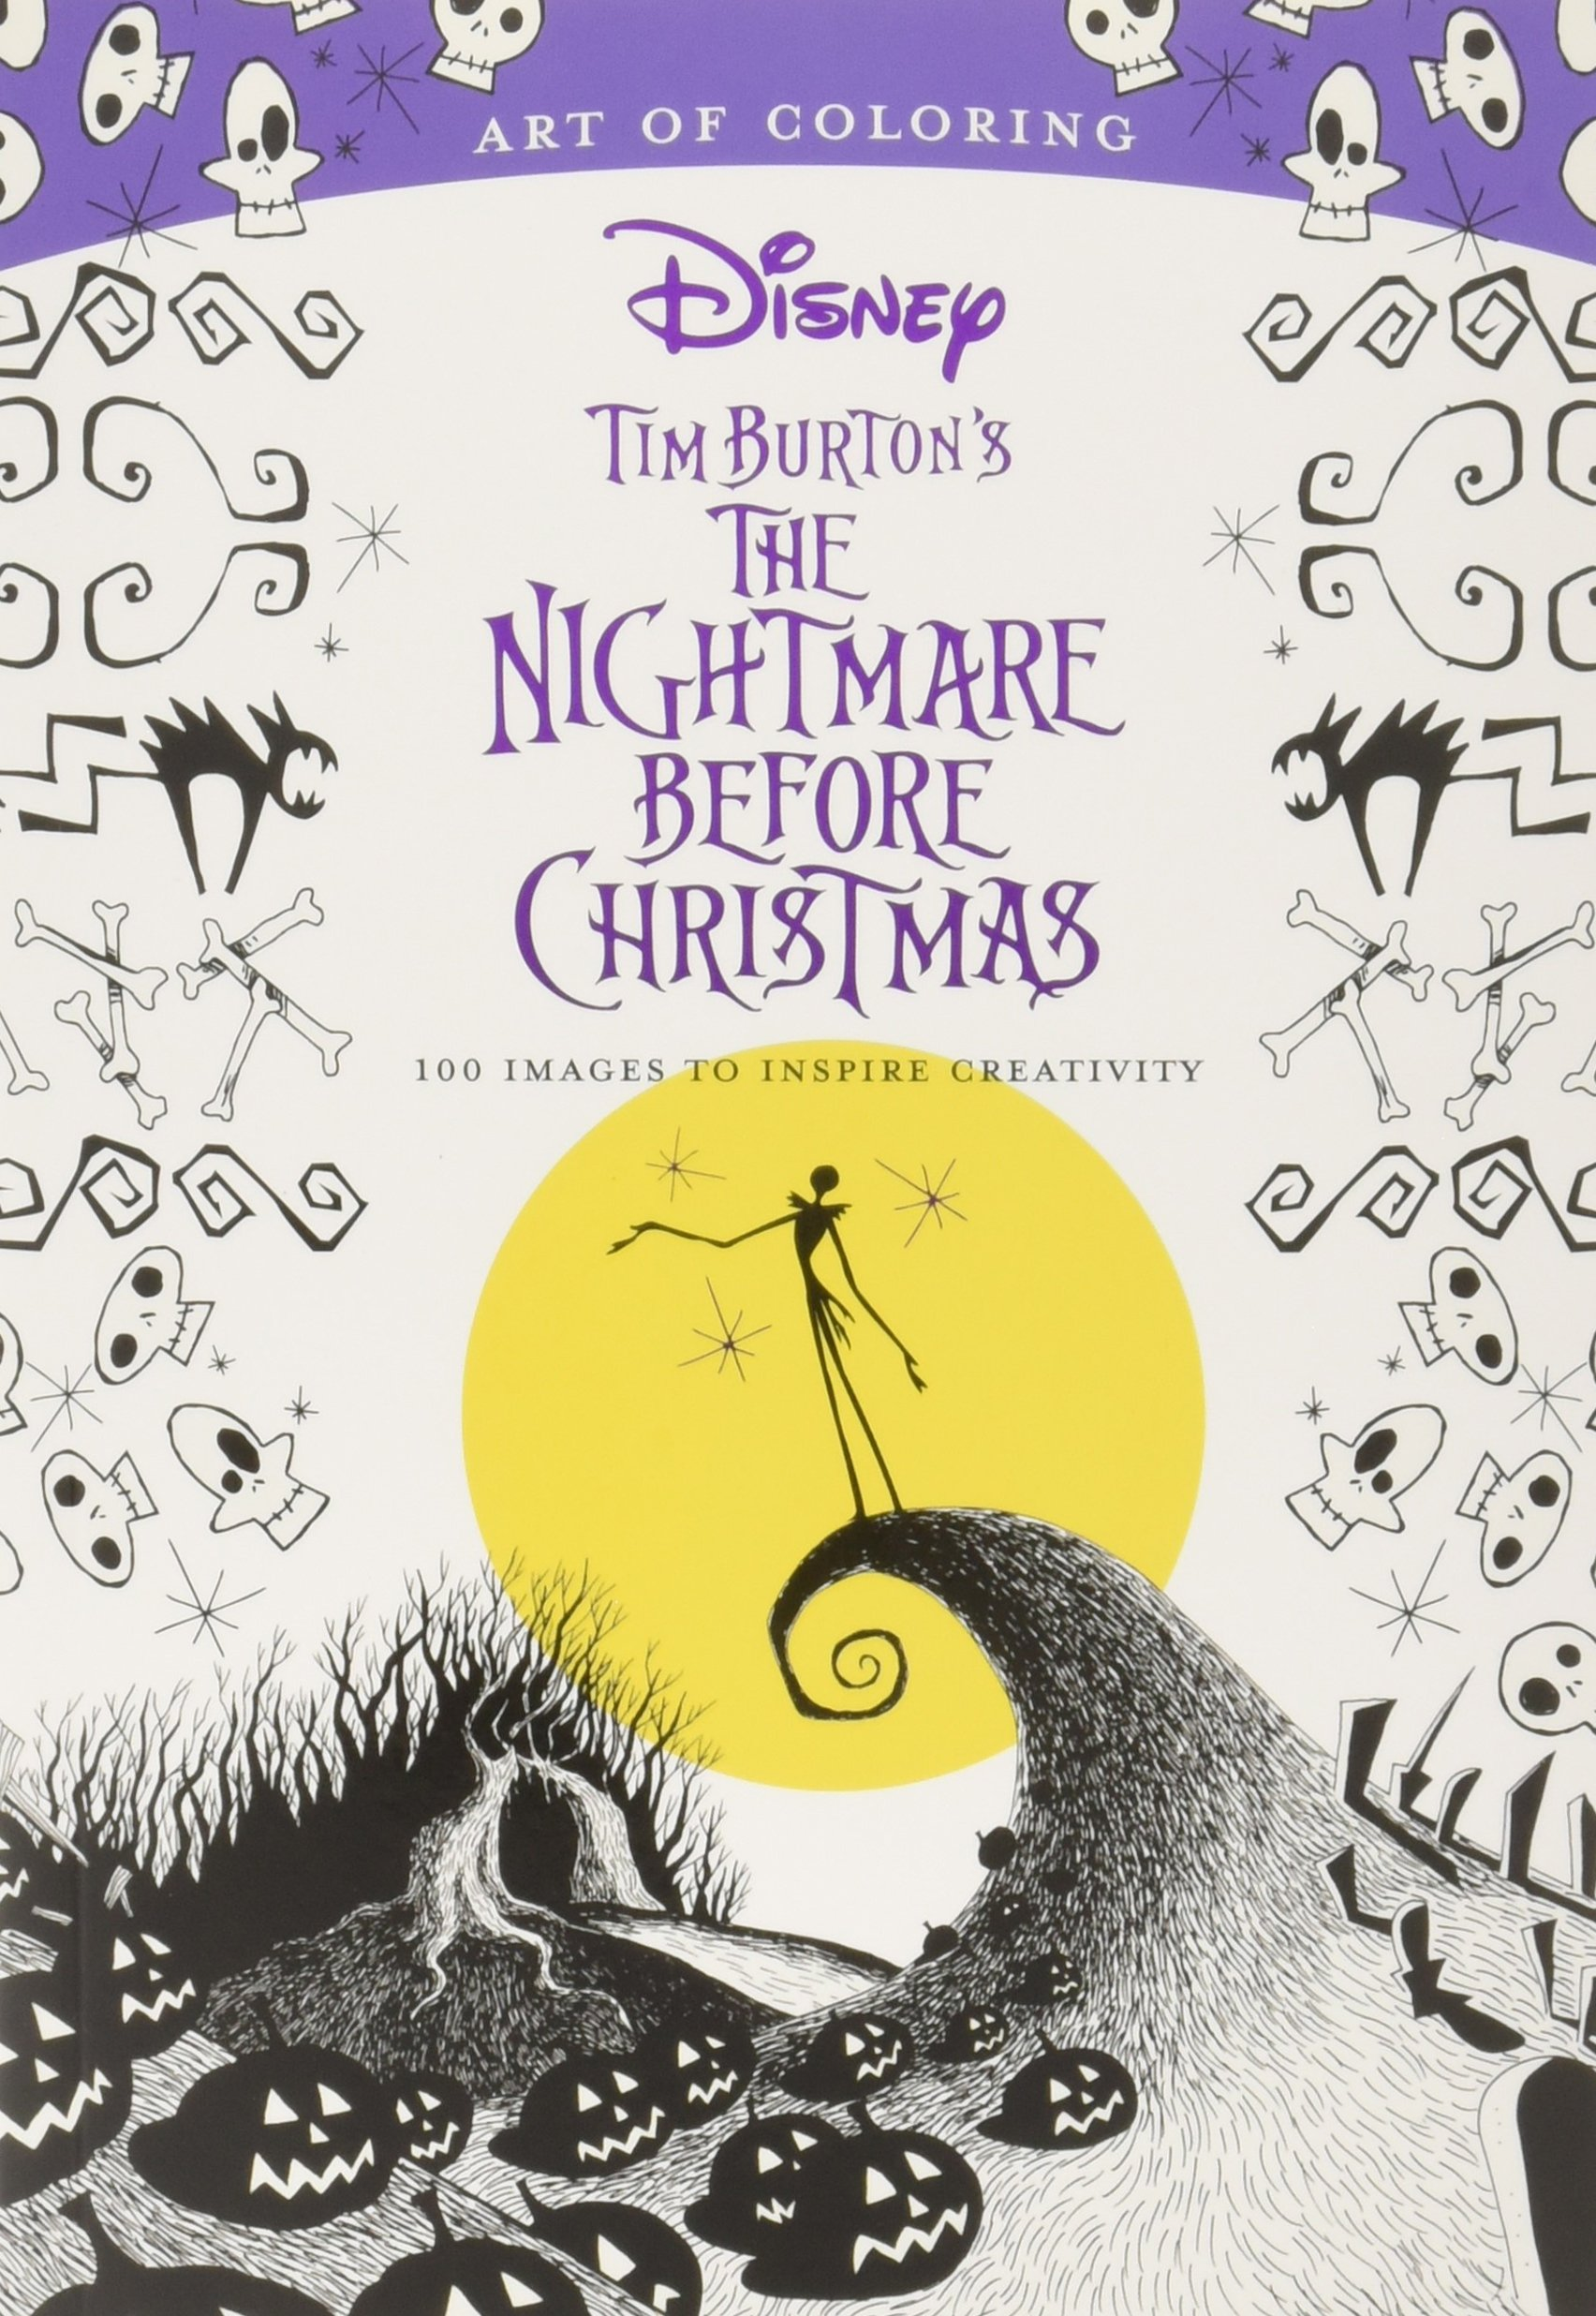 Tim Burton Nightmare Before Christmas Artwork.Art Of Coloring The Nightmare Before Christmas The